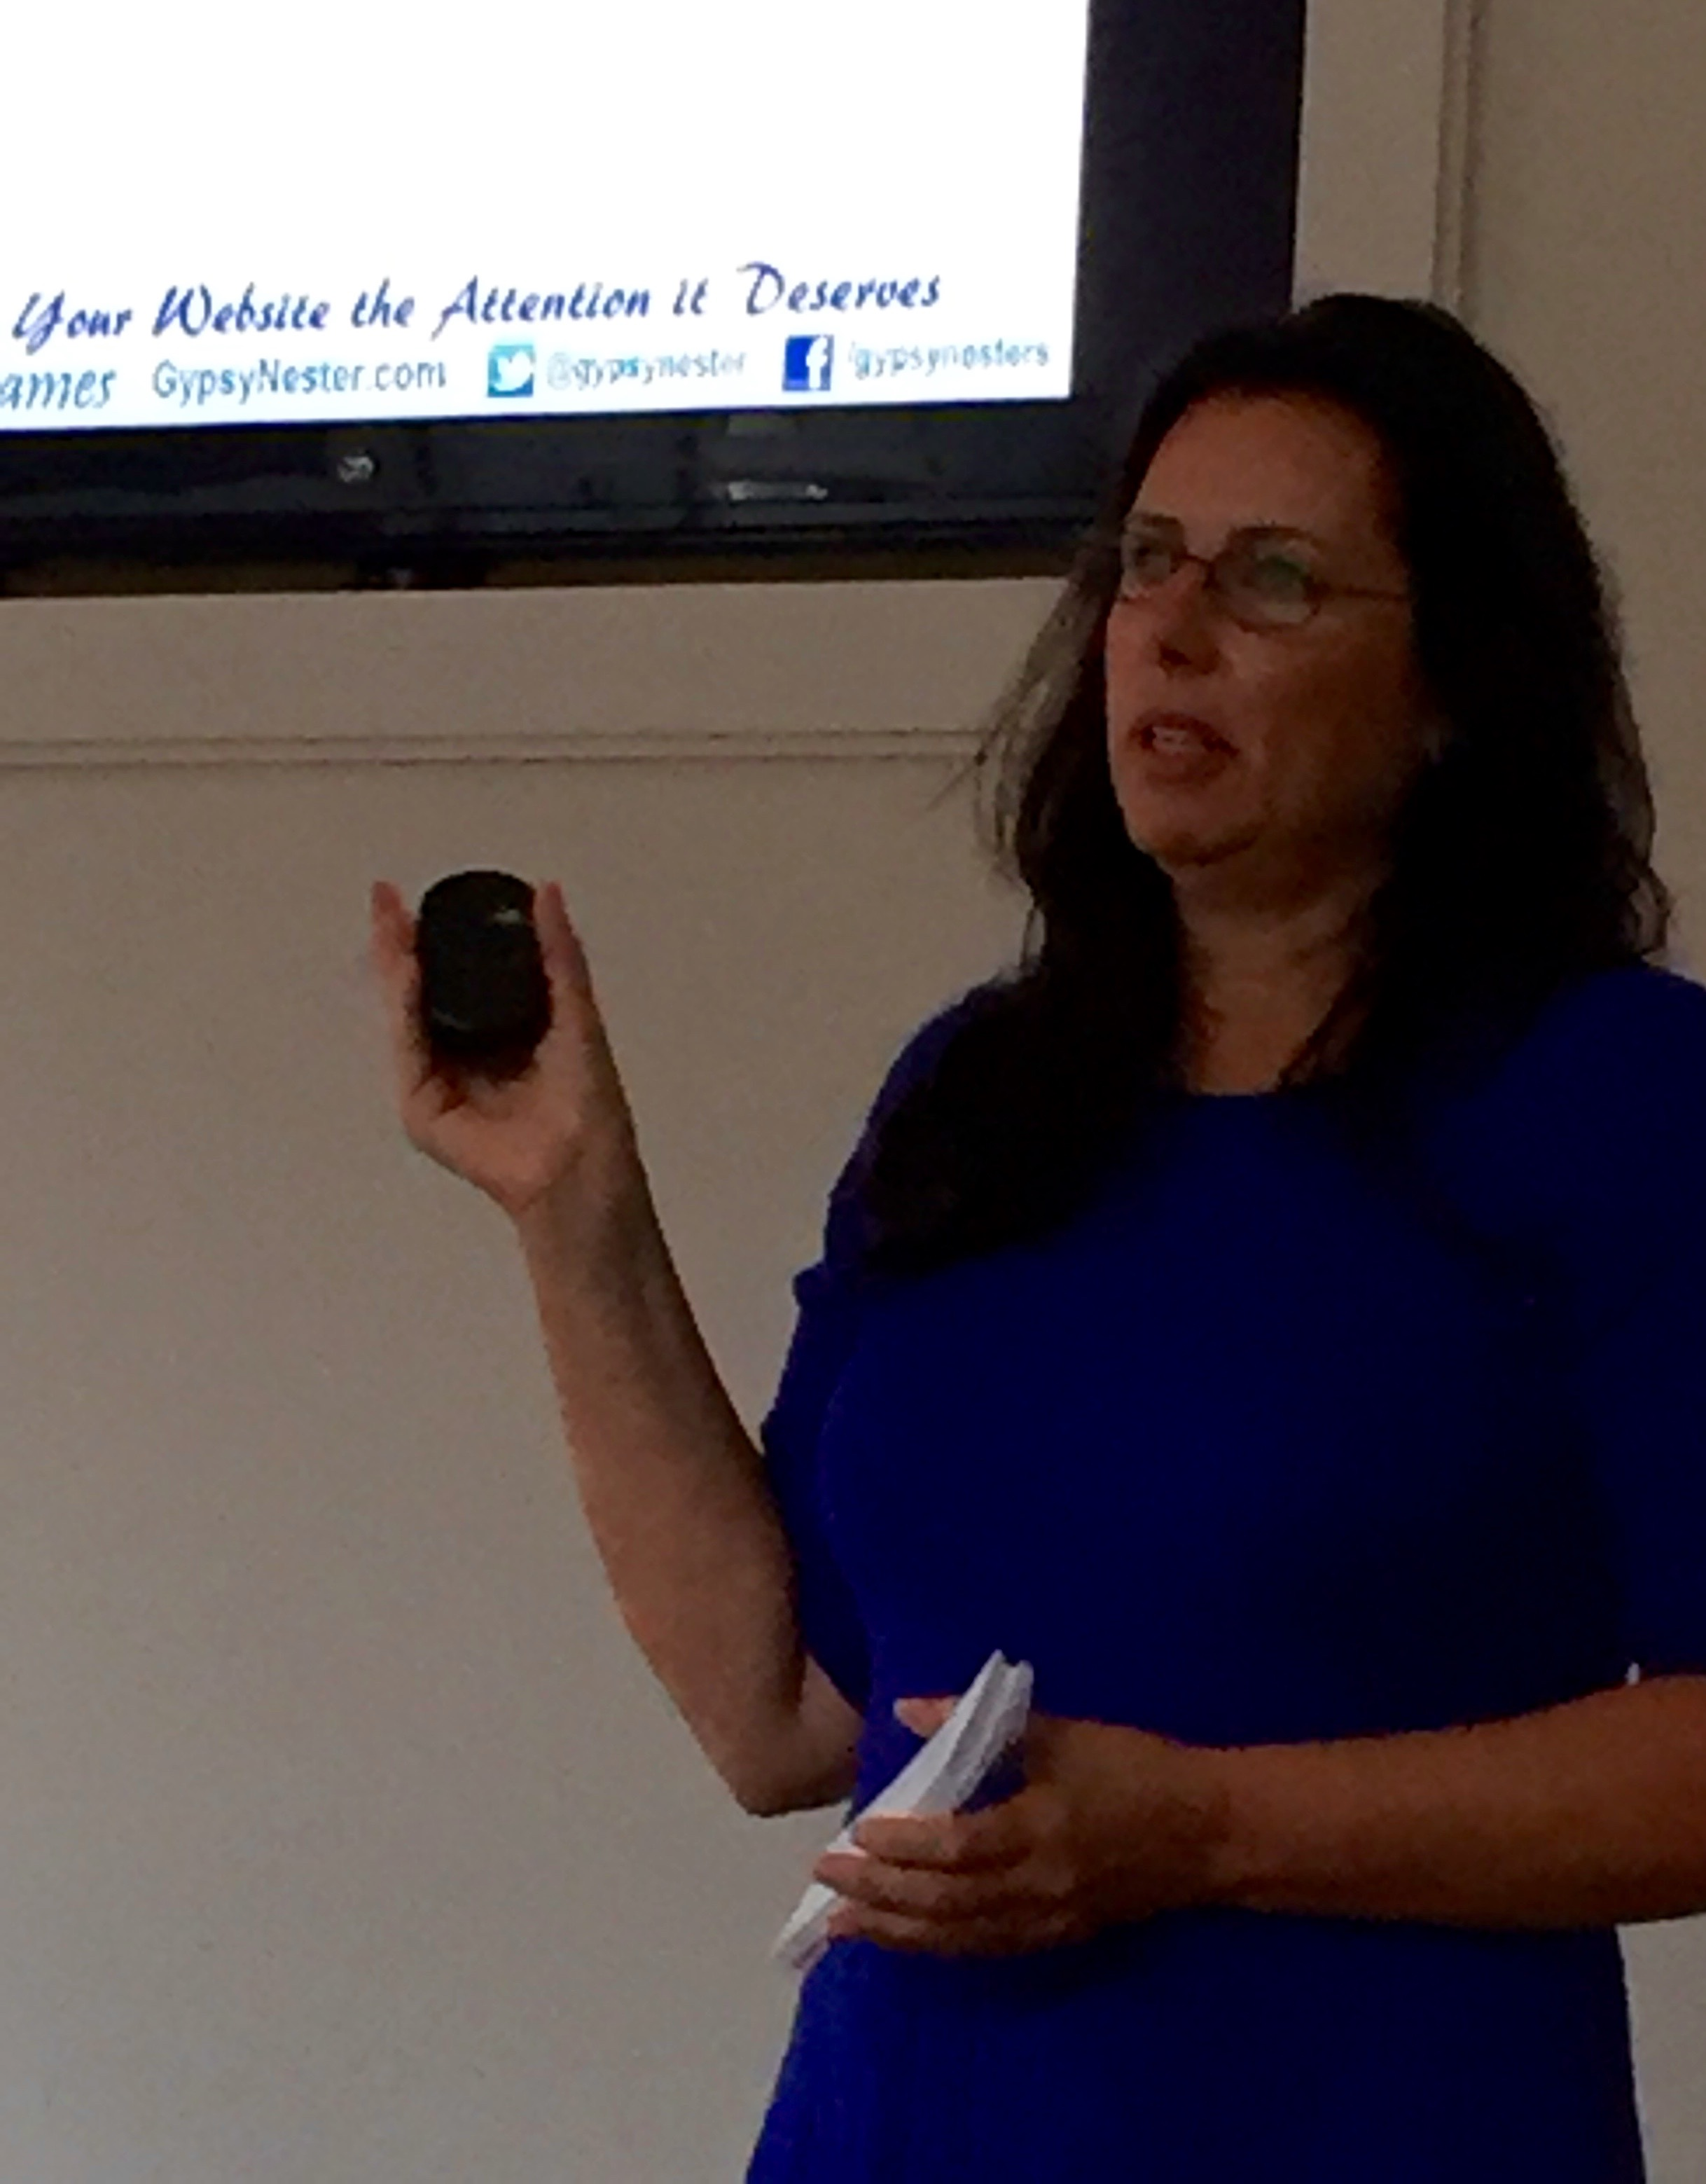 """Veronica James, author of """"Going Gypsy"""", during her talk """"Getting Your Website The Attention It Deserves"""""""